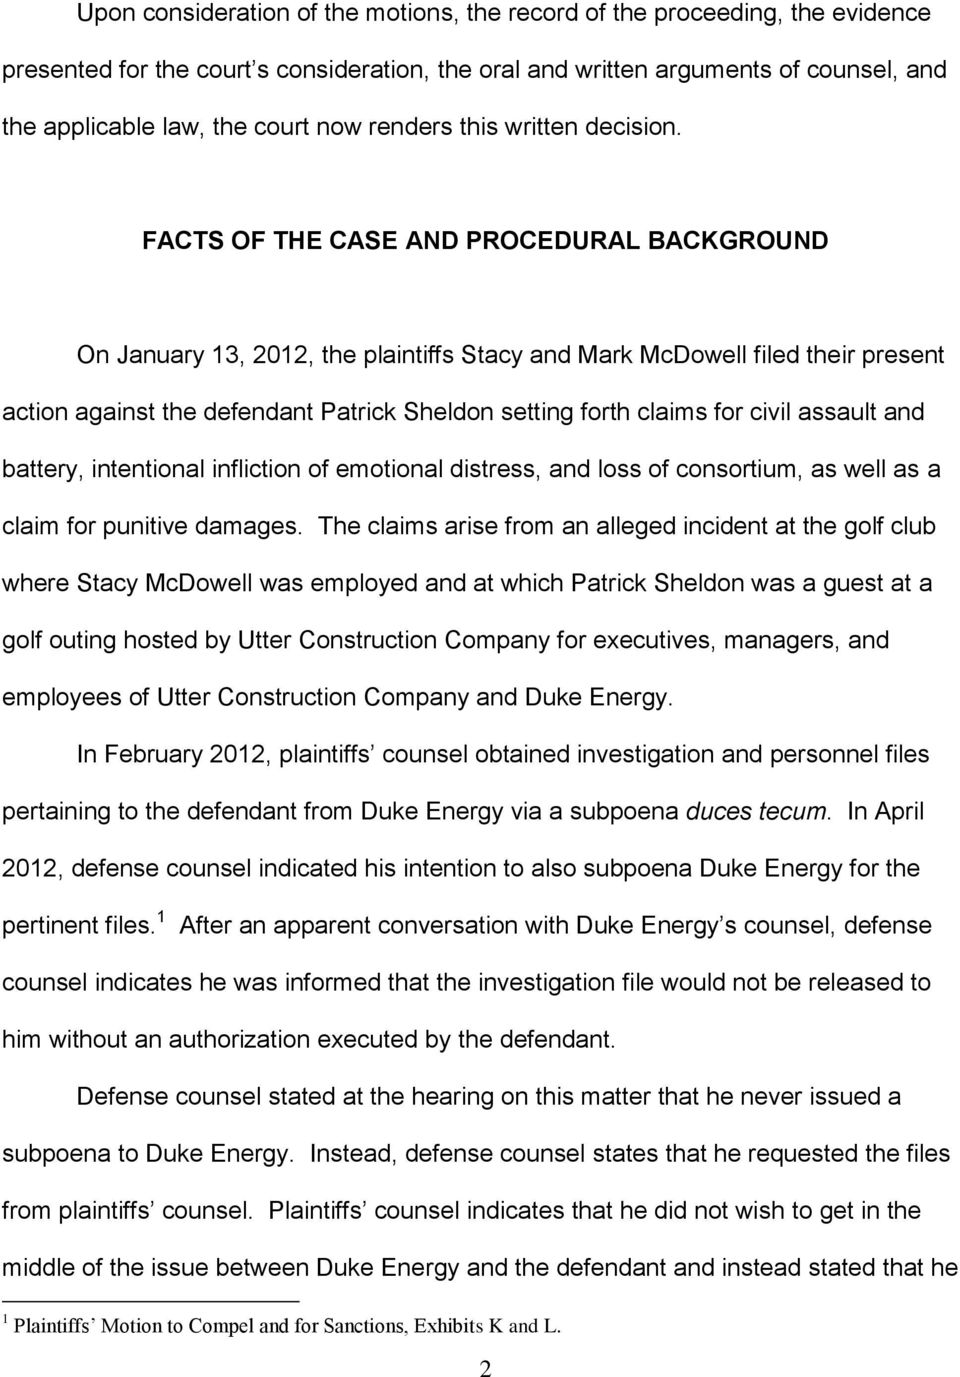 FACTS OF THE CASE AND PROCEDURAL BACKGROUND On January 13, 2012, the plaintiffs Stacy and Mark McDowell filed their present action against the defendant Patrick Sheldon setting forth claims for civil